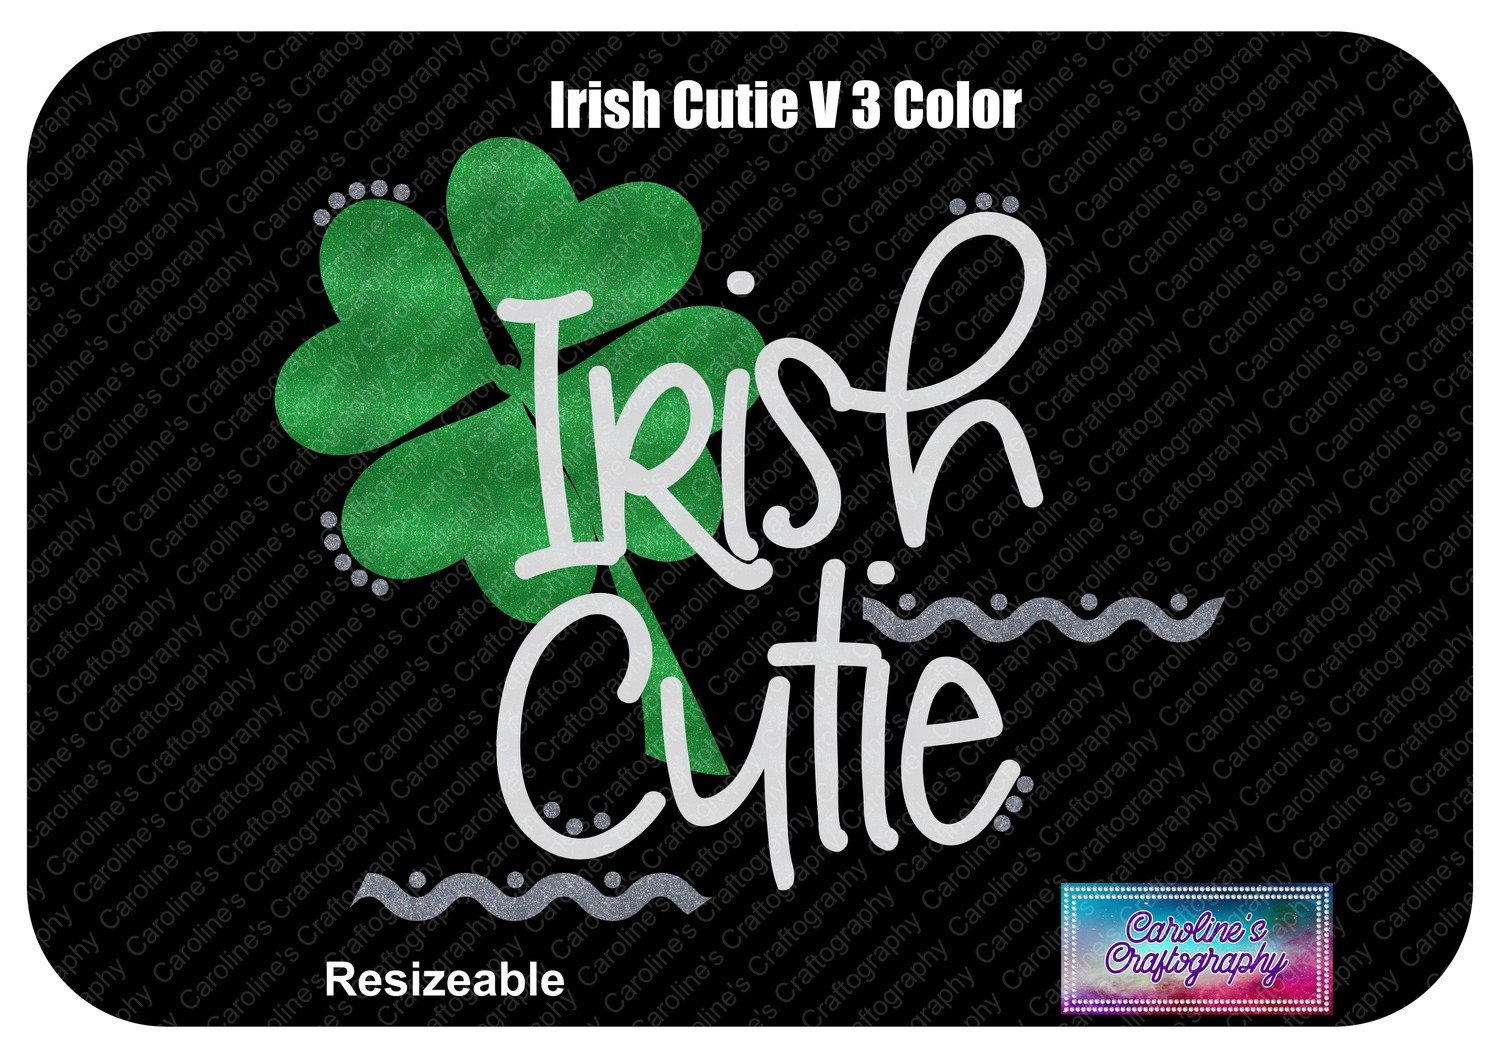 Irish Cutie Vinyl 3 Color